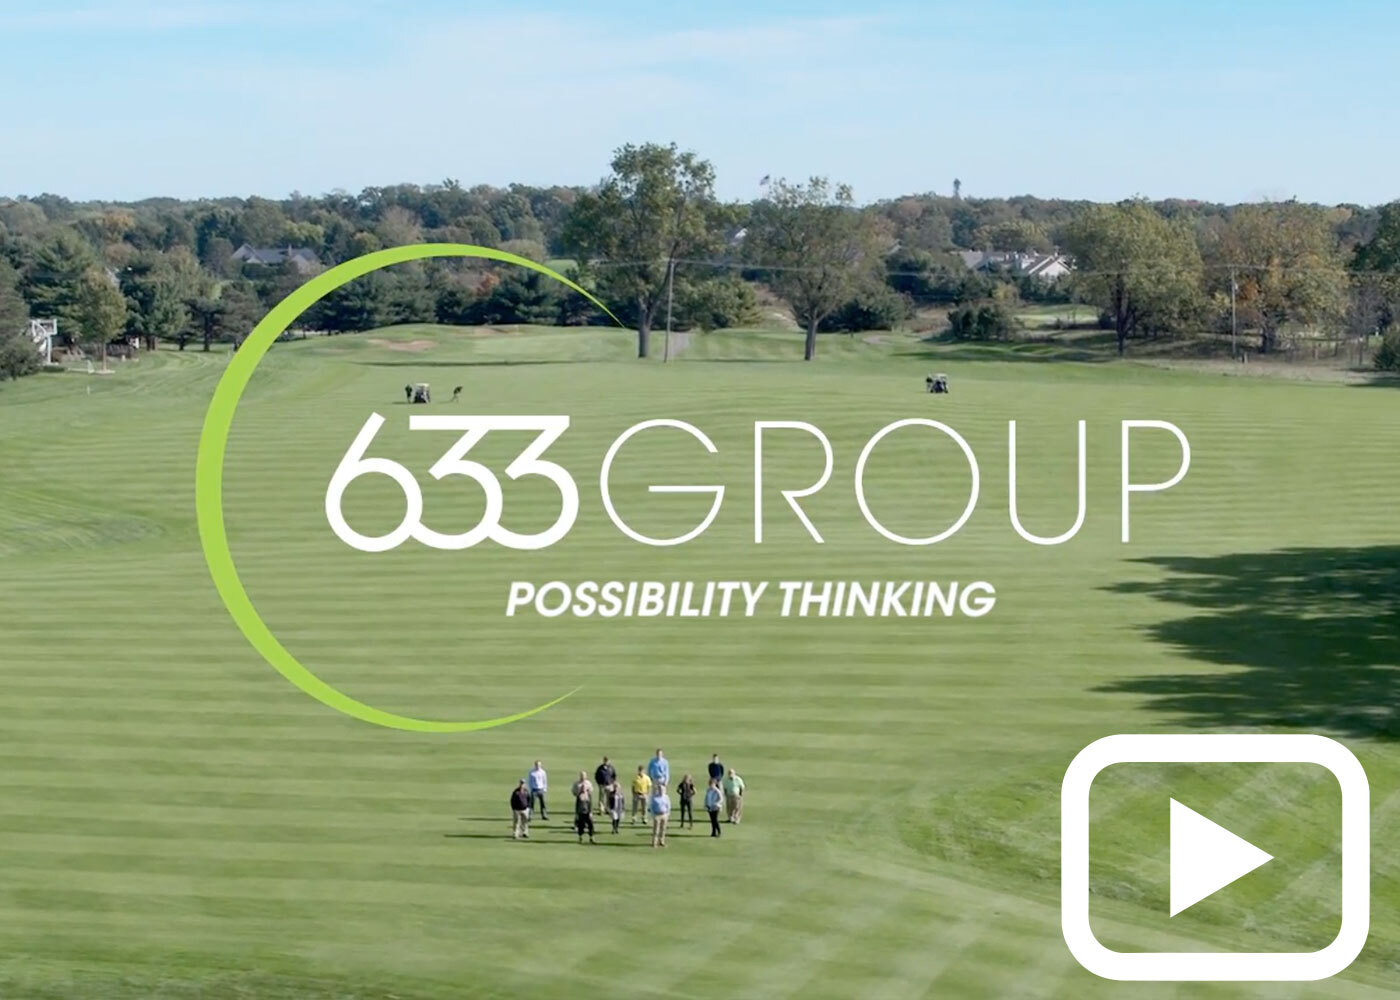 633 Group anthem video - Experience